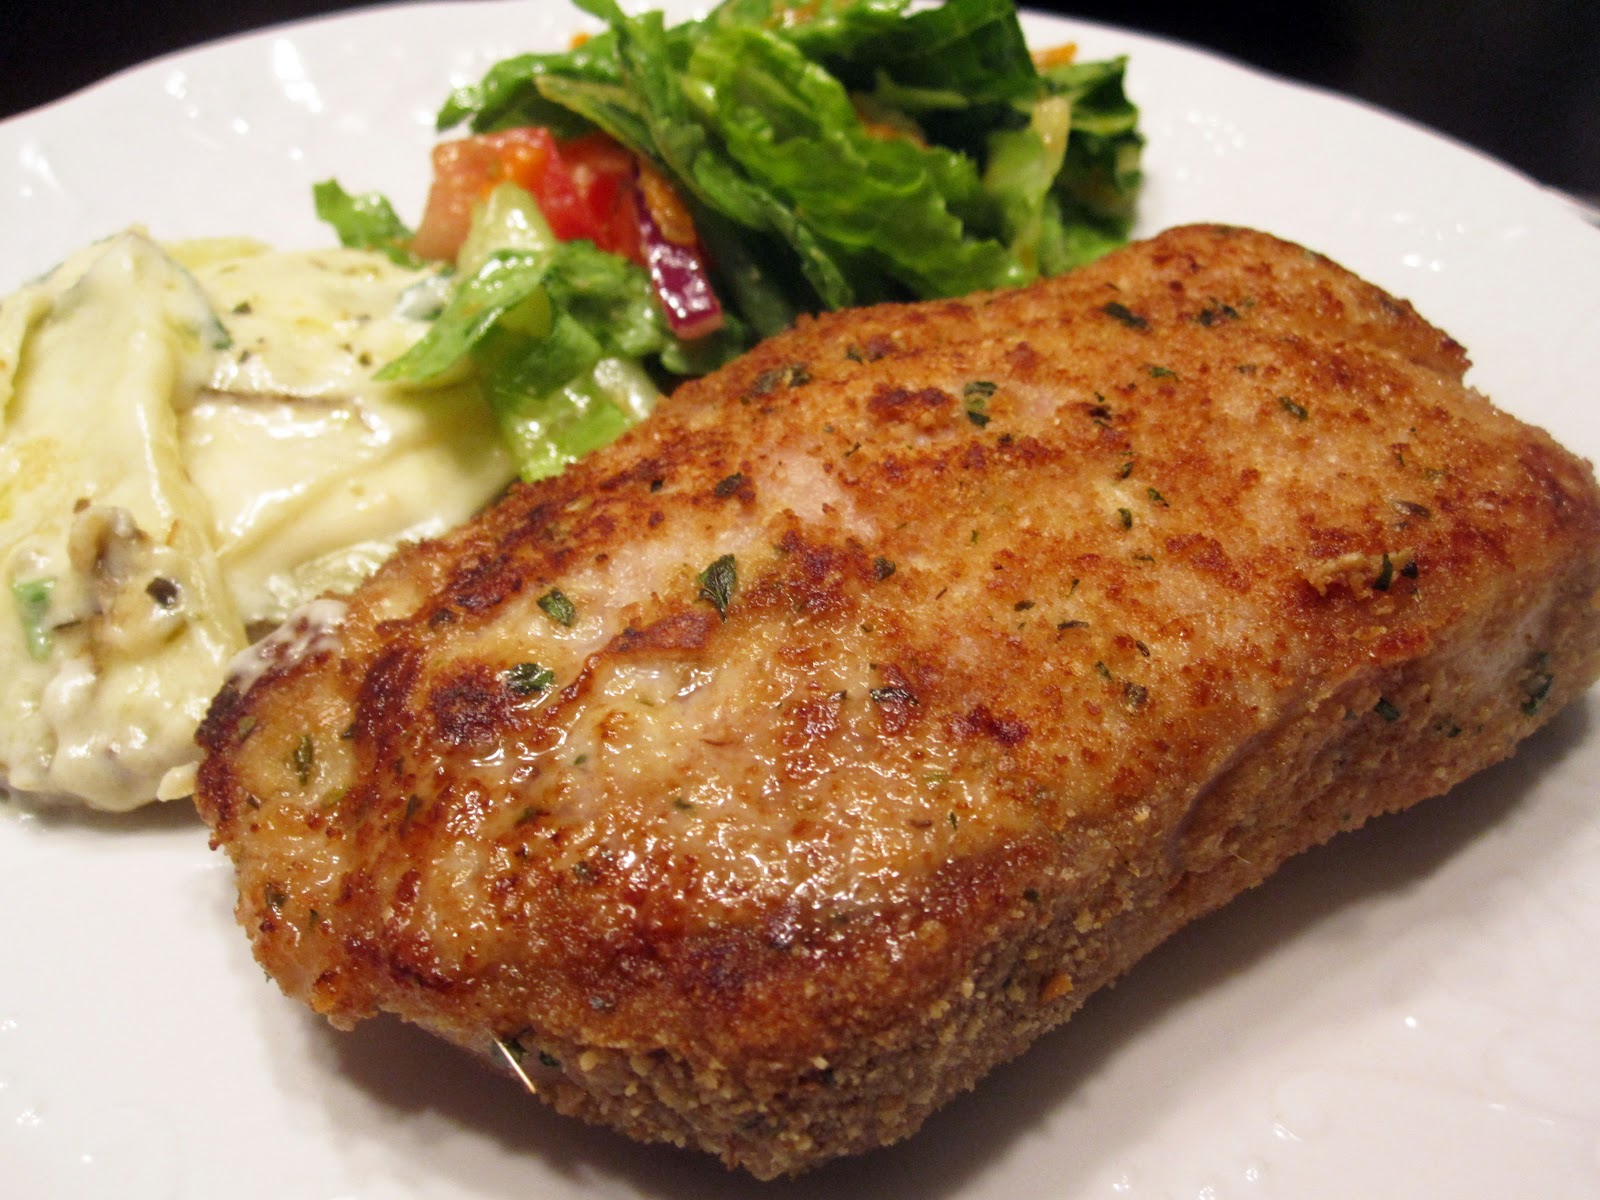 Just Putzing Around the Kitchen: Baked Italian-Style Breaded Pork Chops